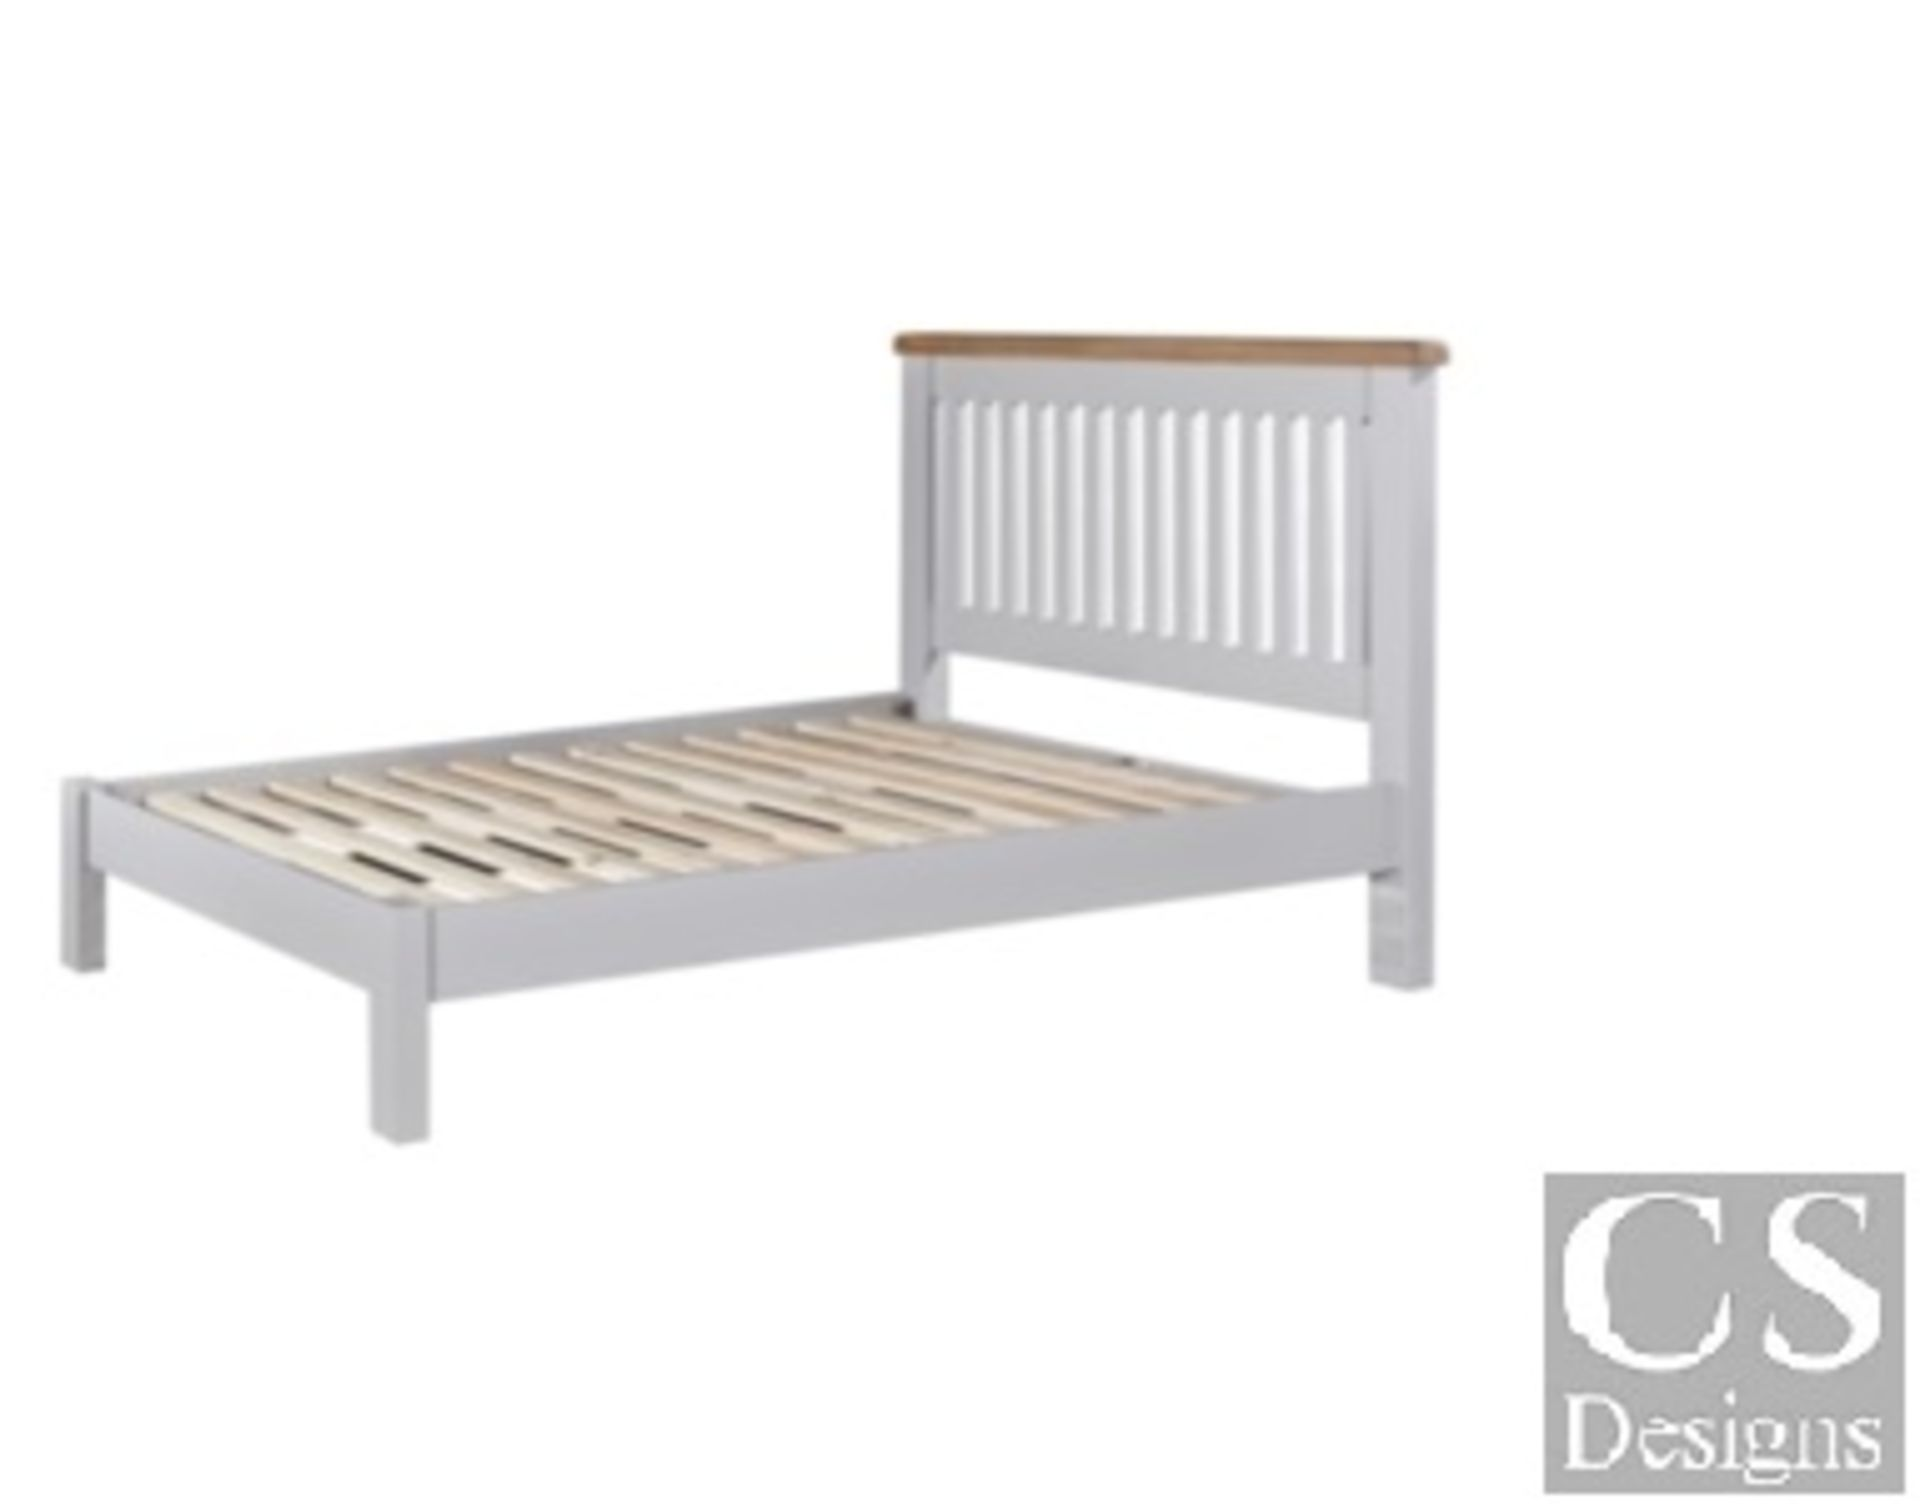 """+ VAT Brand New CS Designs """"Daylesford"""" Double Bed Frame With Natural Oak Tops And Solid Hardwood - Image 3 of 3"""